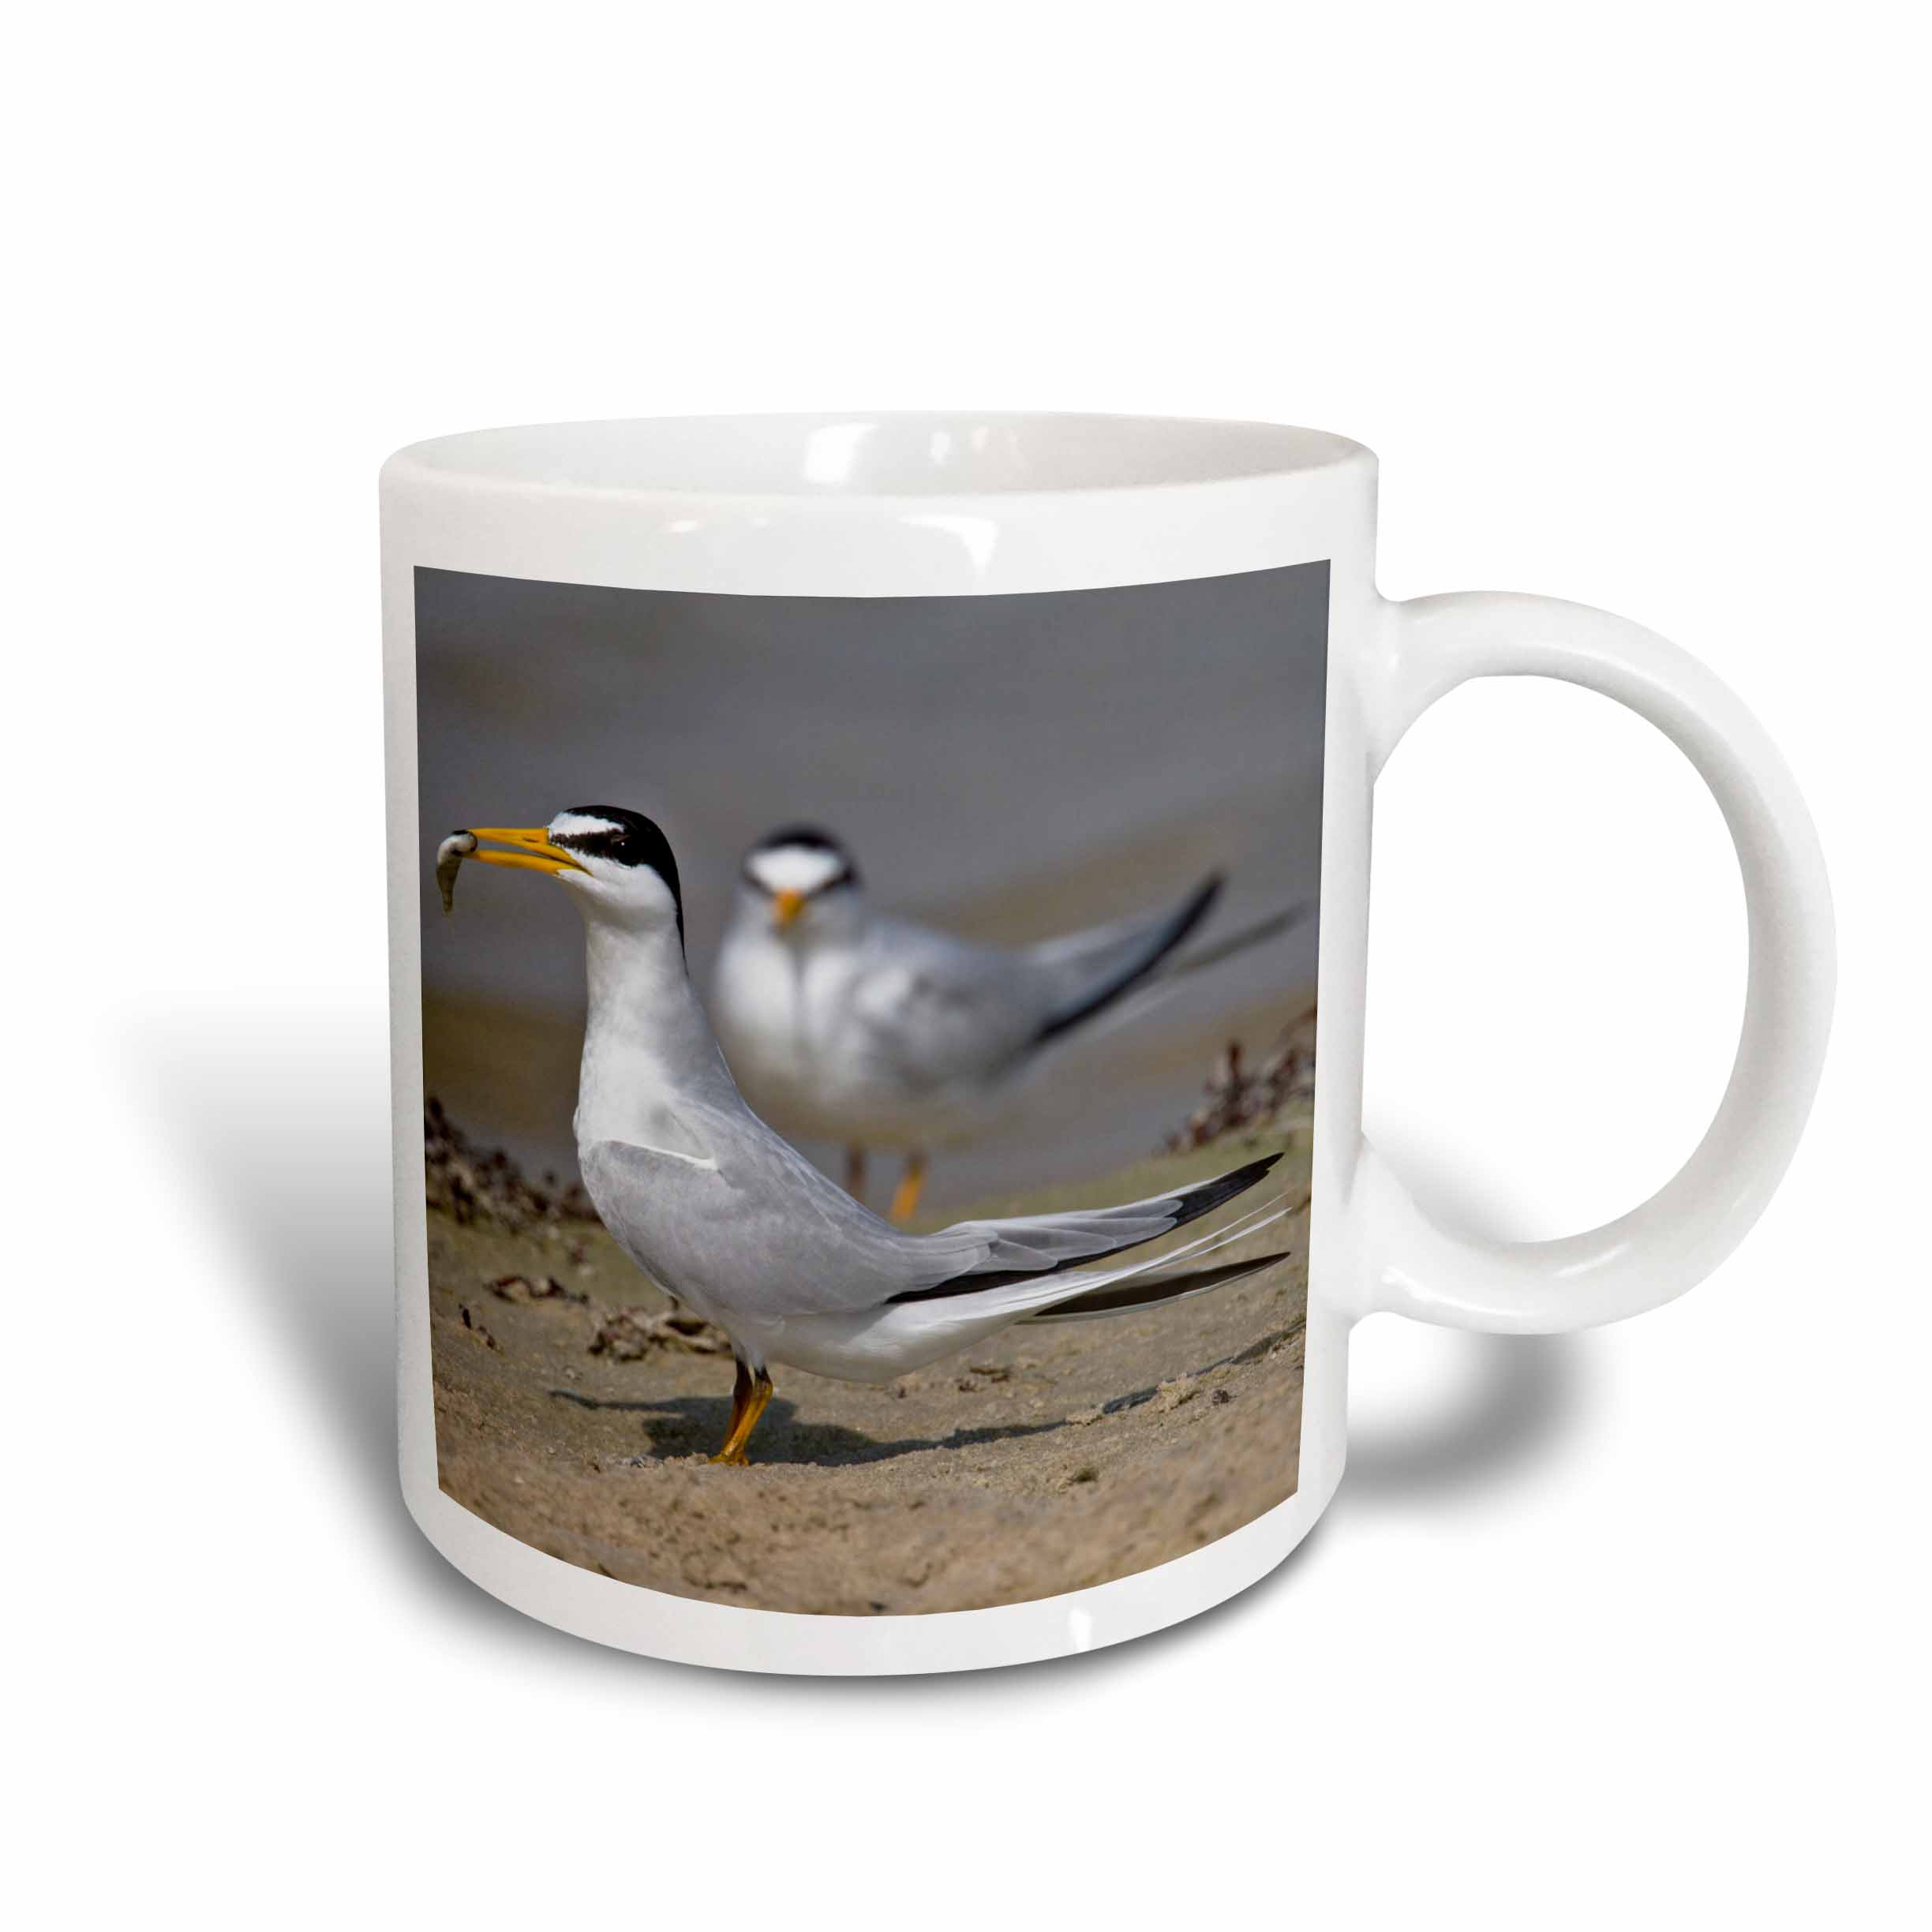 3dRose Least Tern bird with fish, Galveston, Texas, USA US44 LDI0579 Larry Ditto, Ceramic Mug, 11-ounce by 3dRose